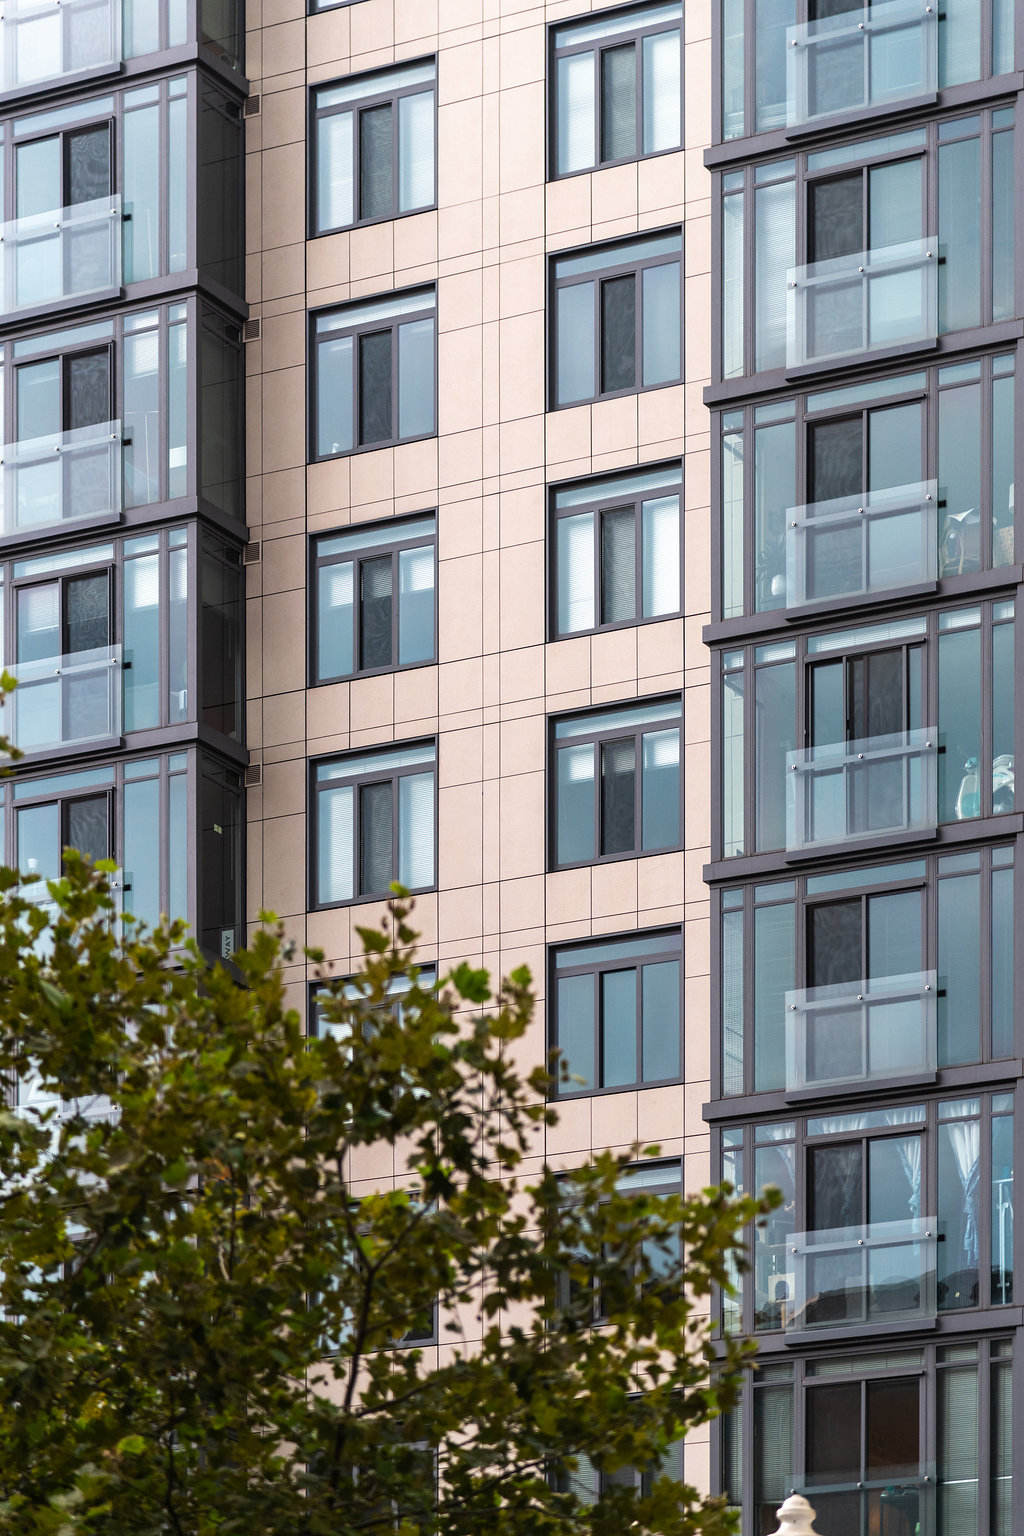 Cladding Corp Ceramic5 Rainscreen 400 K Street NW